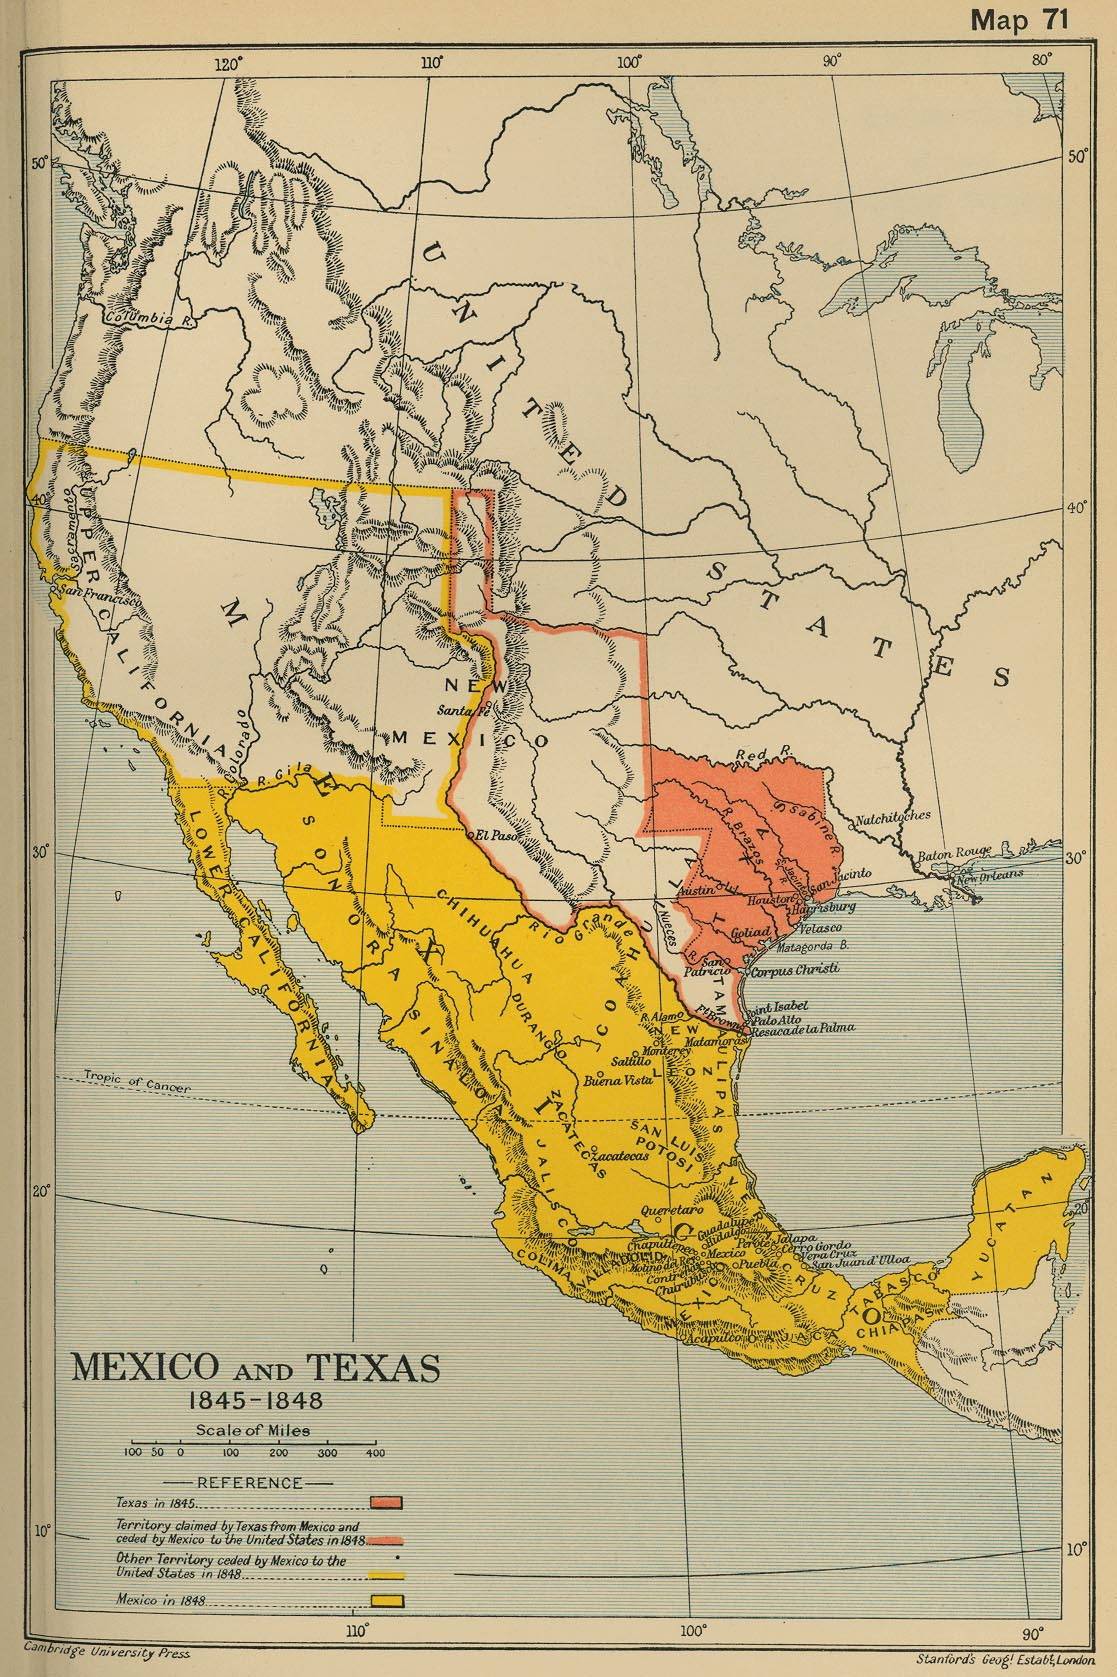 Map Of Texas Mexico.Map Of Mexico And Texas 1845 1848